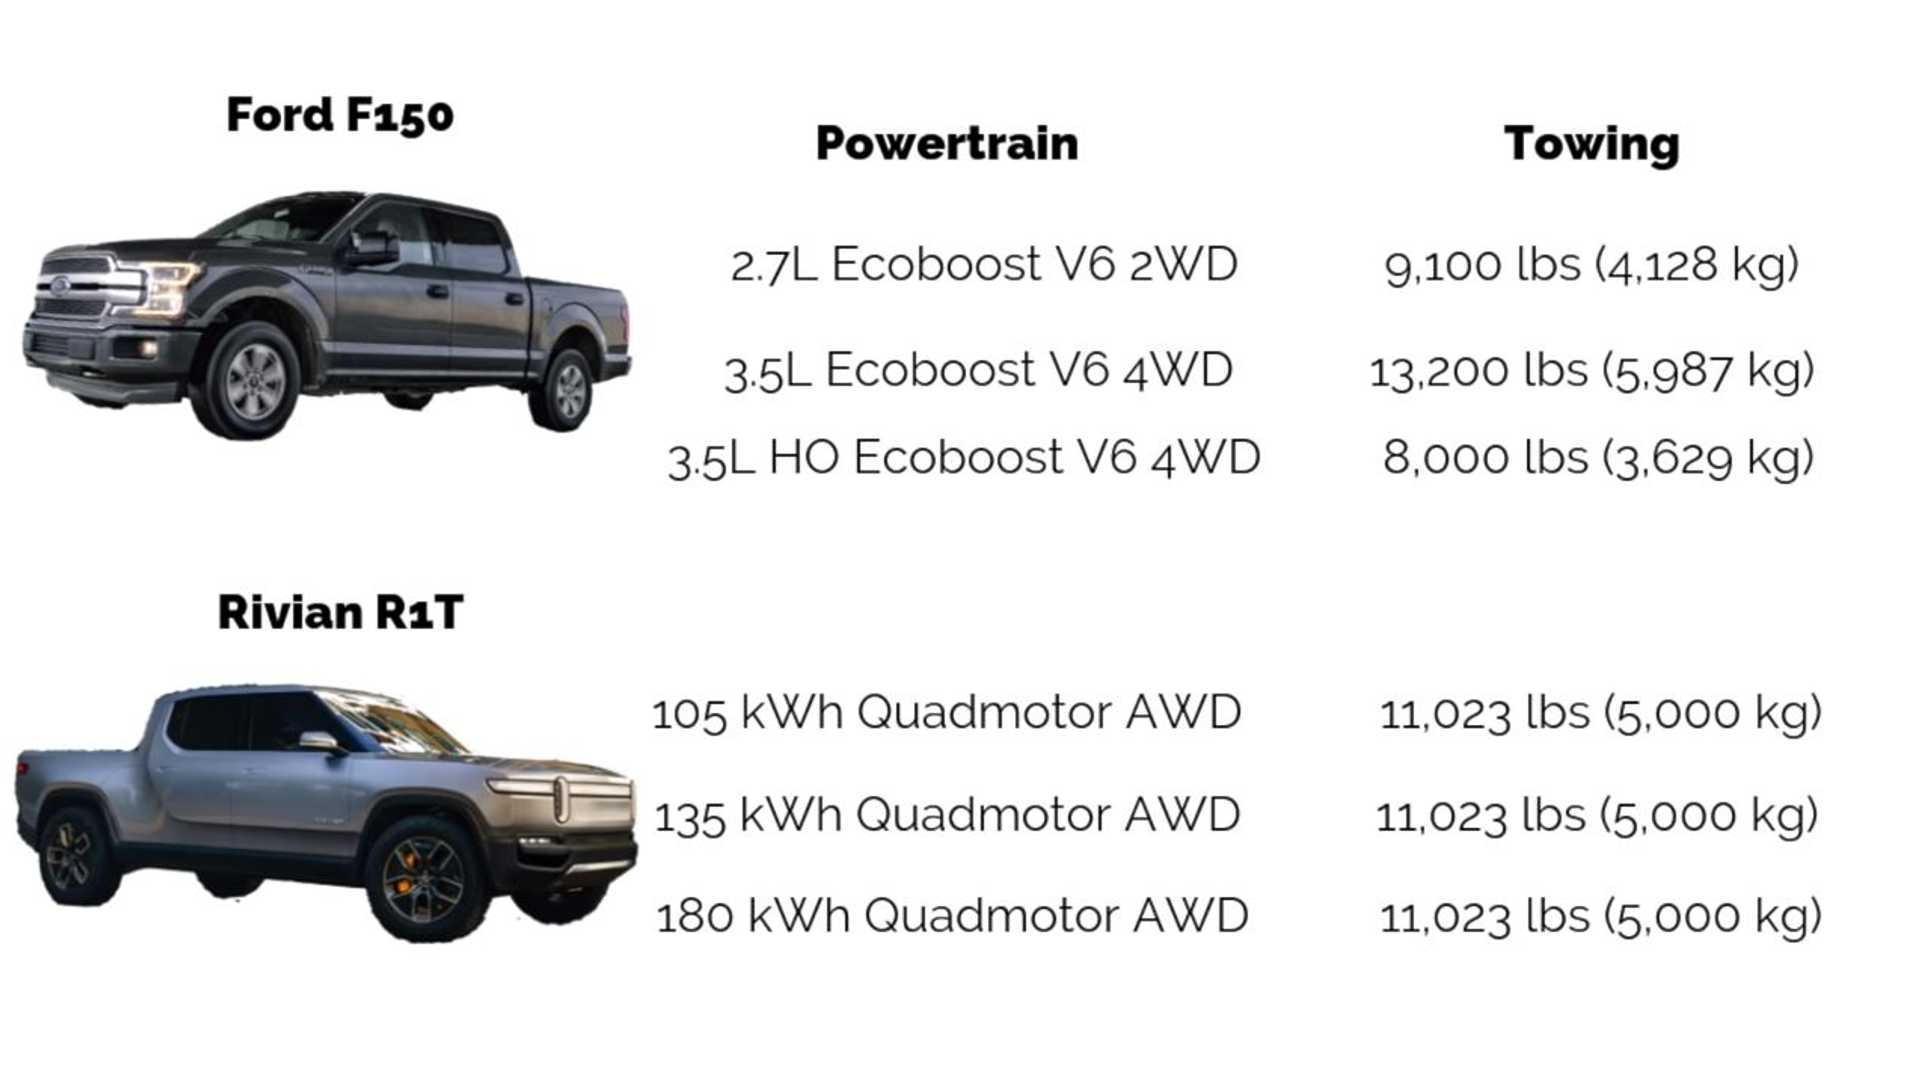 Ford F-150 Versus Rivian R1T Electric Truck: Let's Take A